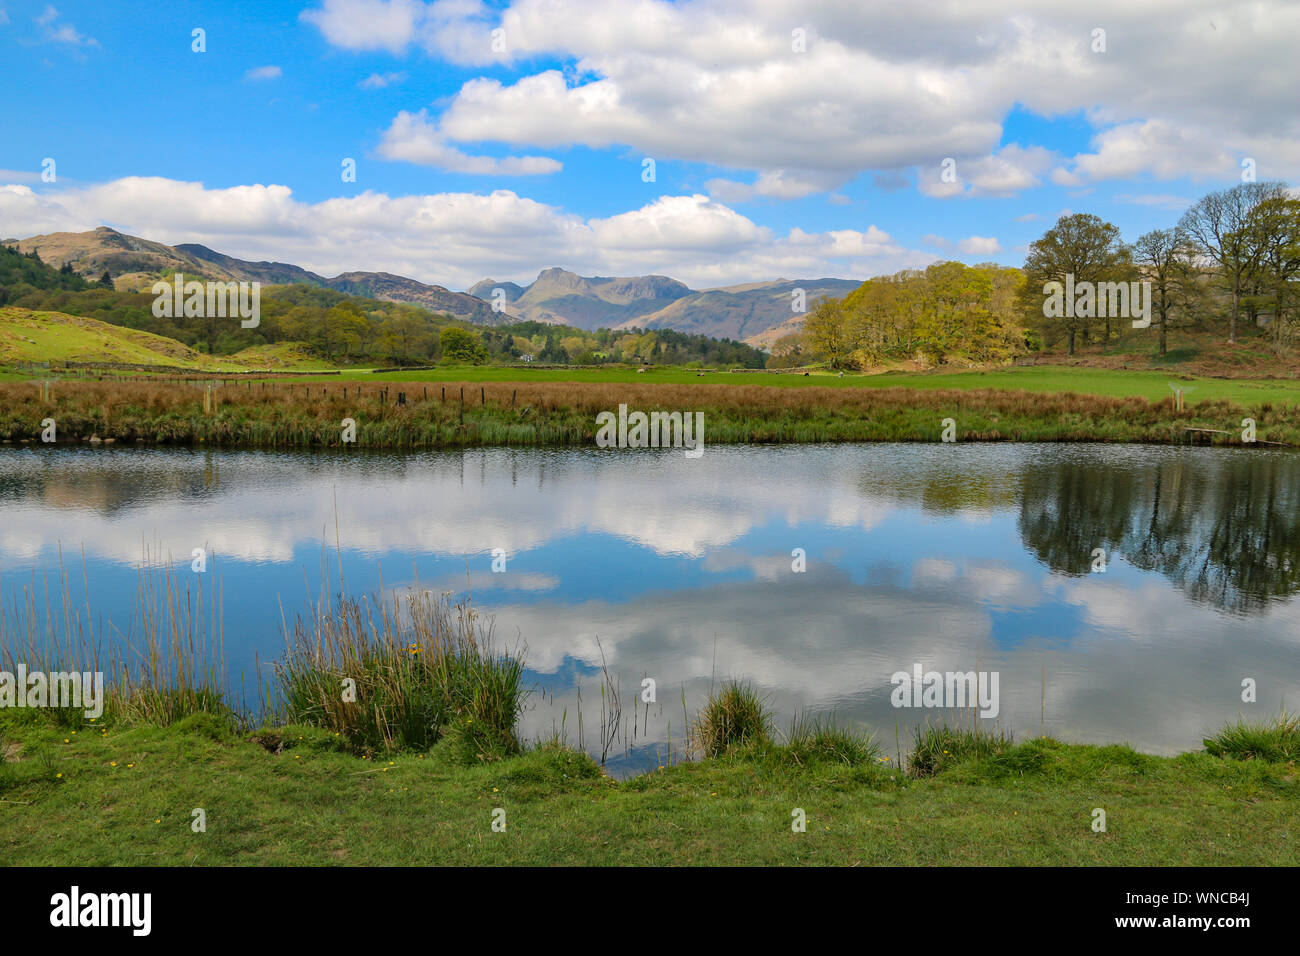 Stunning view of the mountainsm at Langdale Pikes, over Elter Water, near Ambleside, Cumbria, United Kingdom Stock Photo